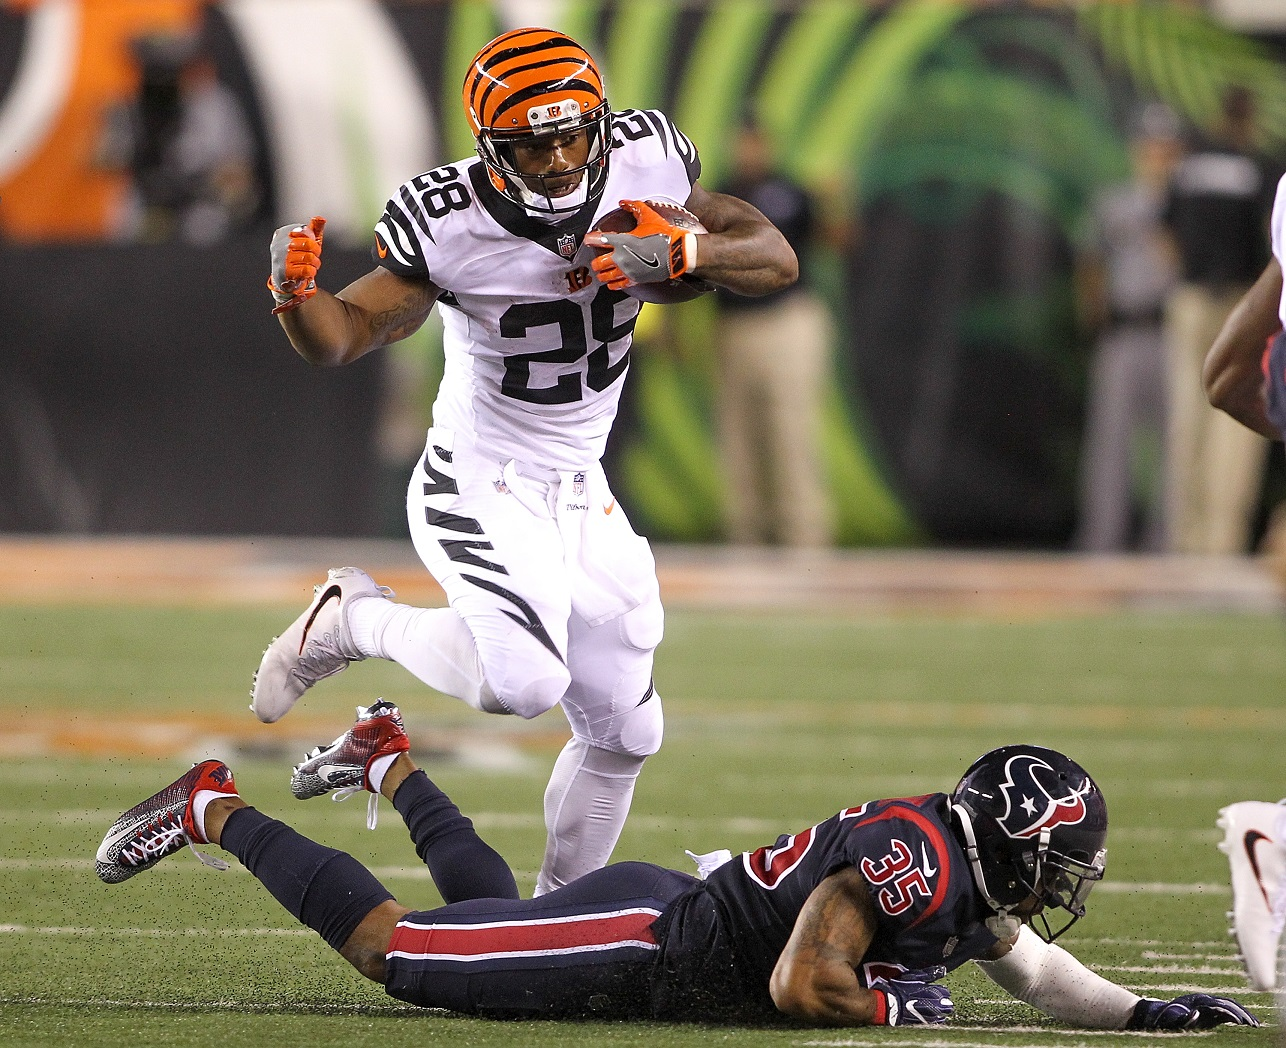 Bengals roll over Packers on way to 21-7 halftime lead